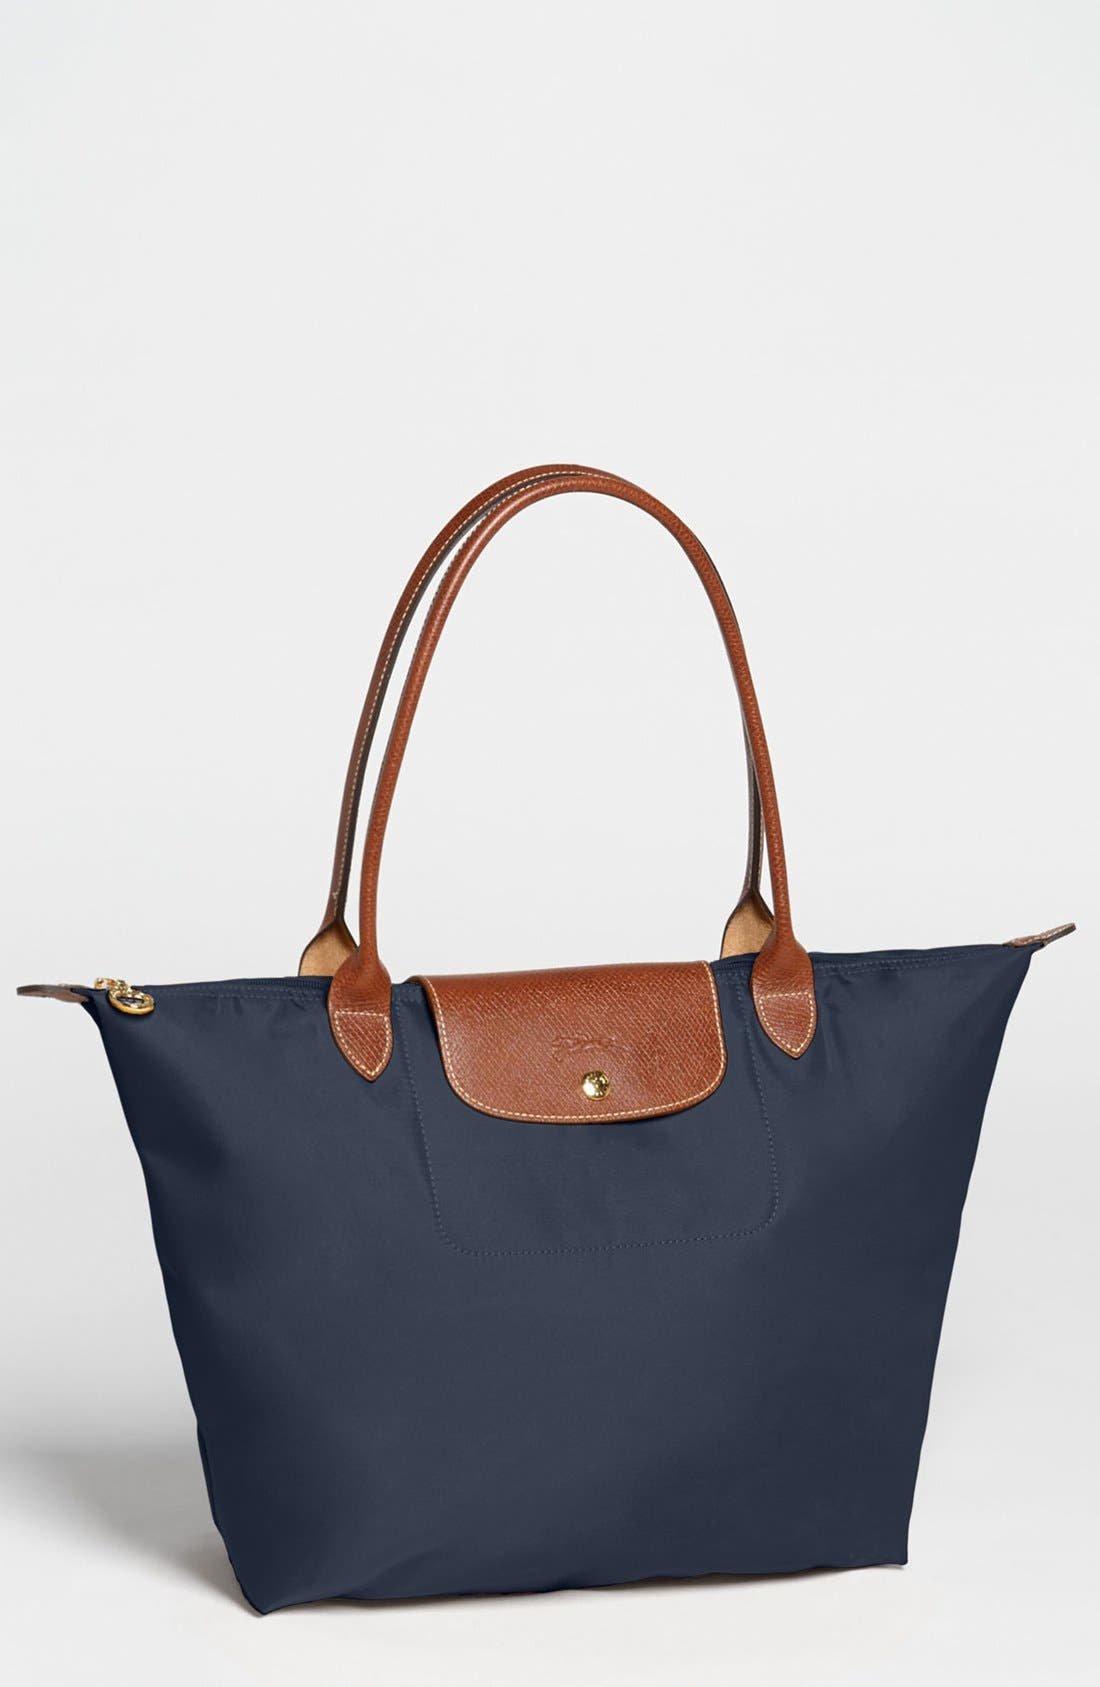 Nylon Tote Bags for Women: Canvas, Leather, Nylon & More | Nordstrom